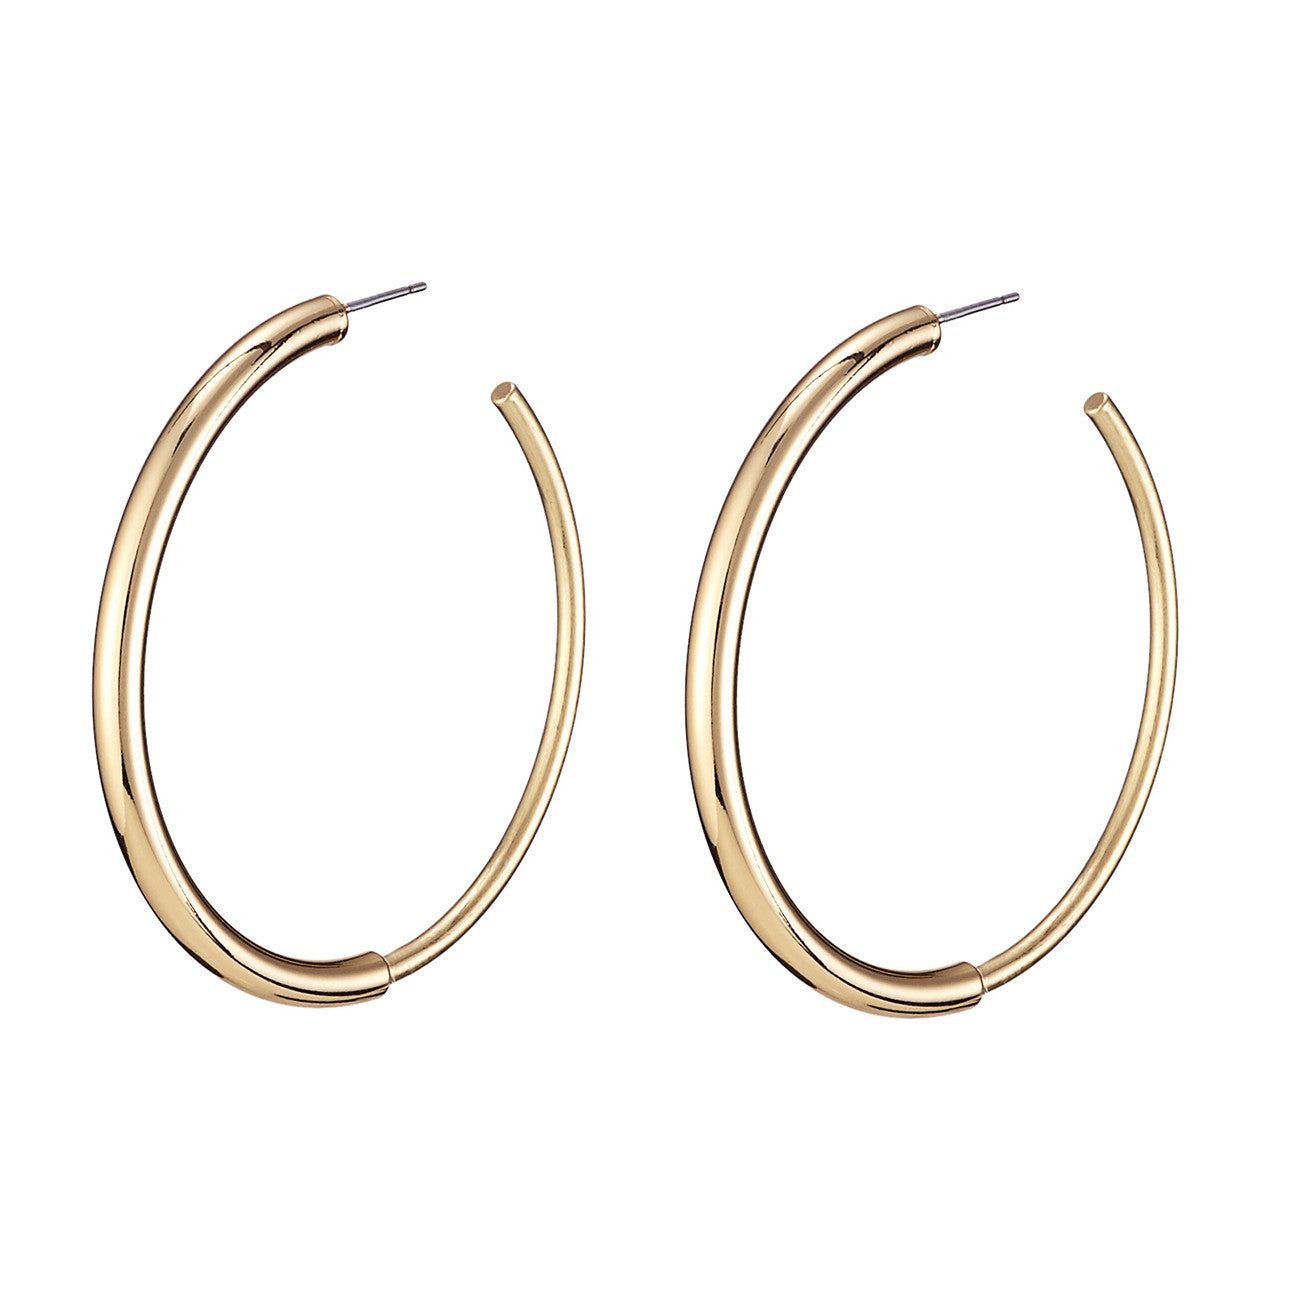 The small Lola Hoops by Jenny Bird in High Polish Gold